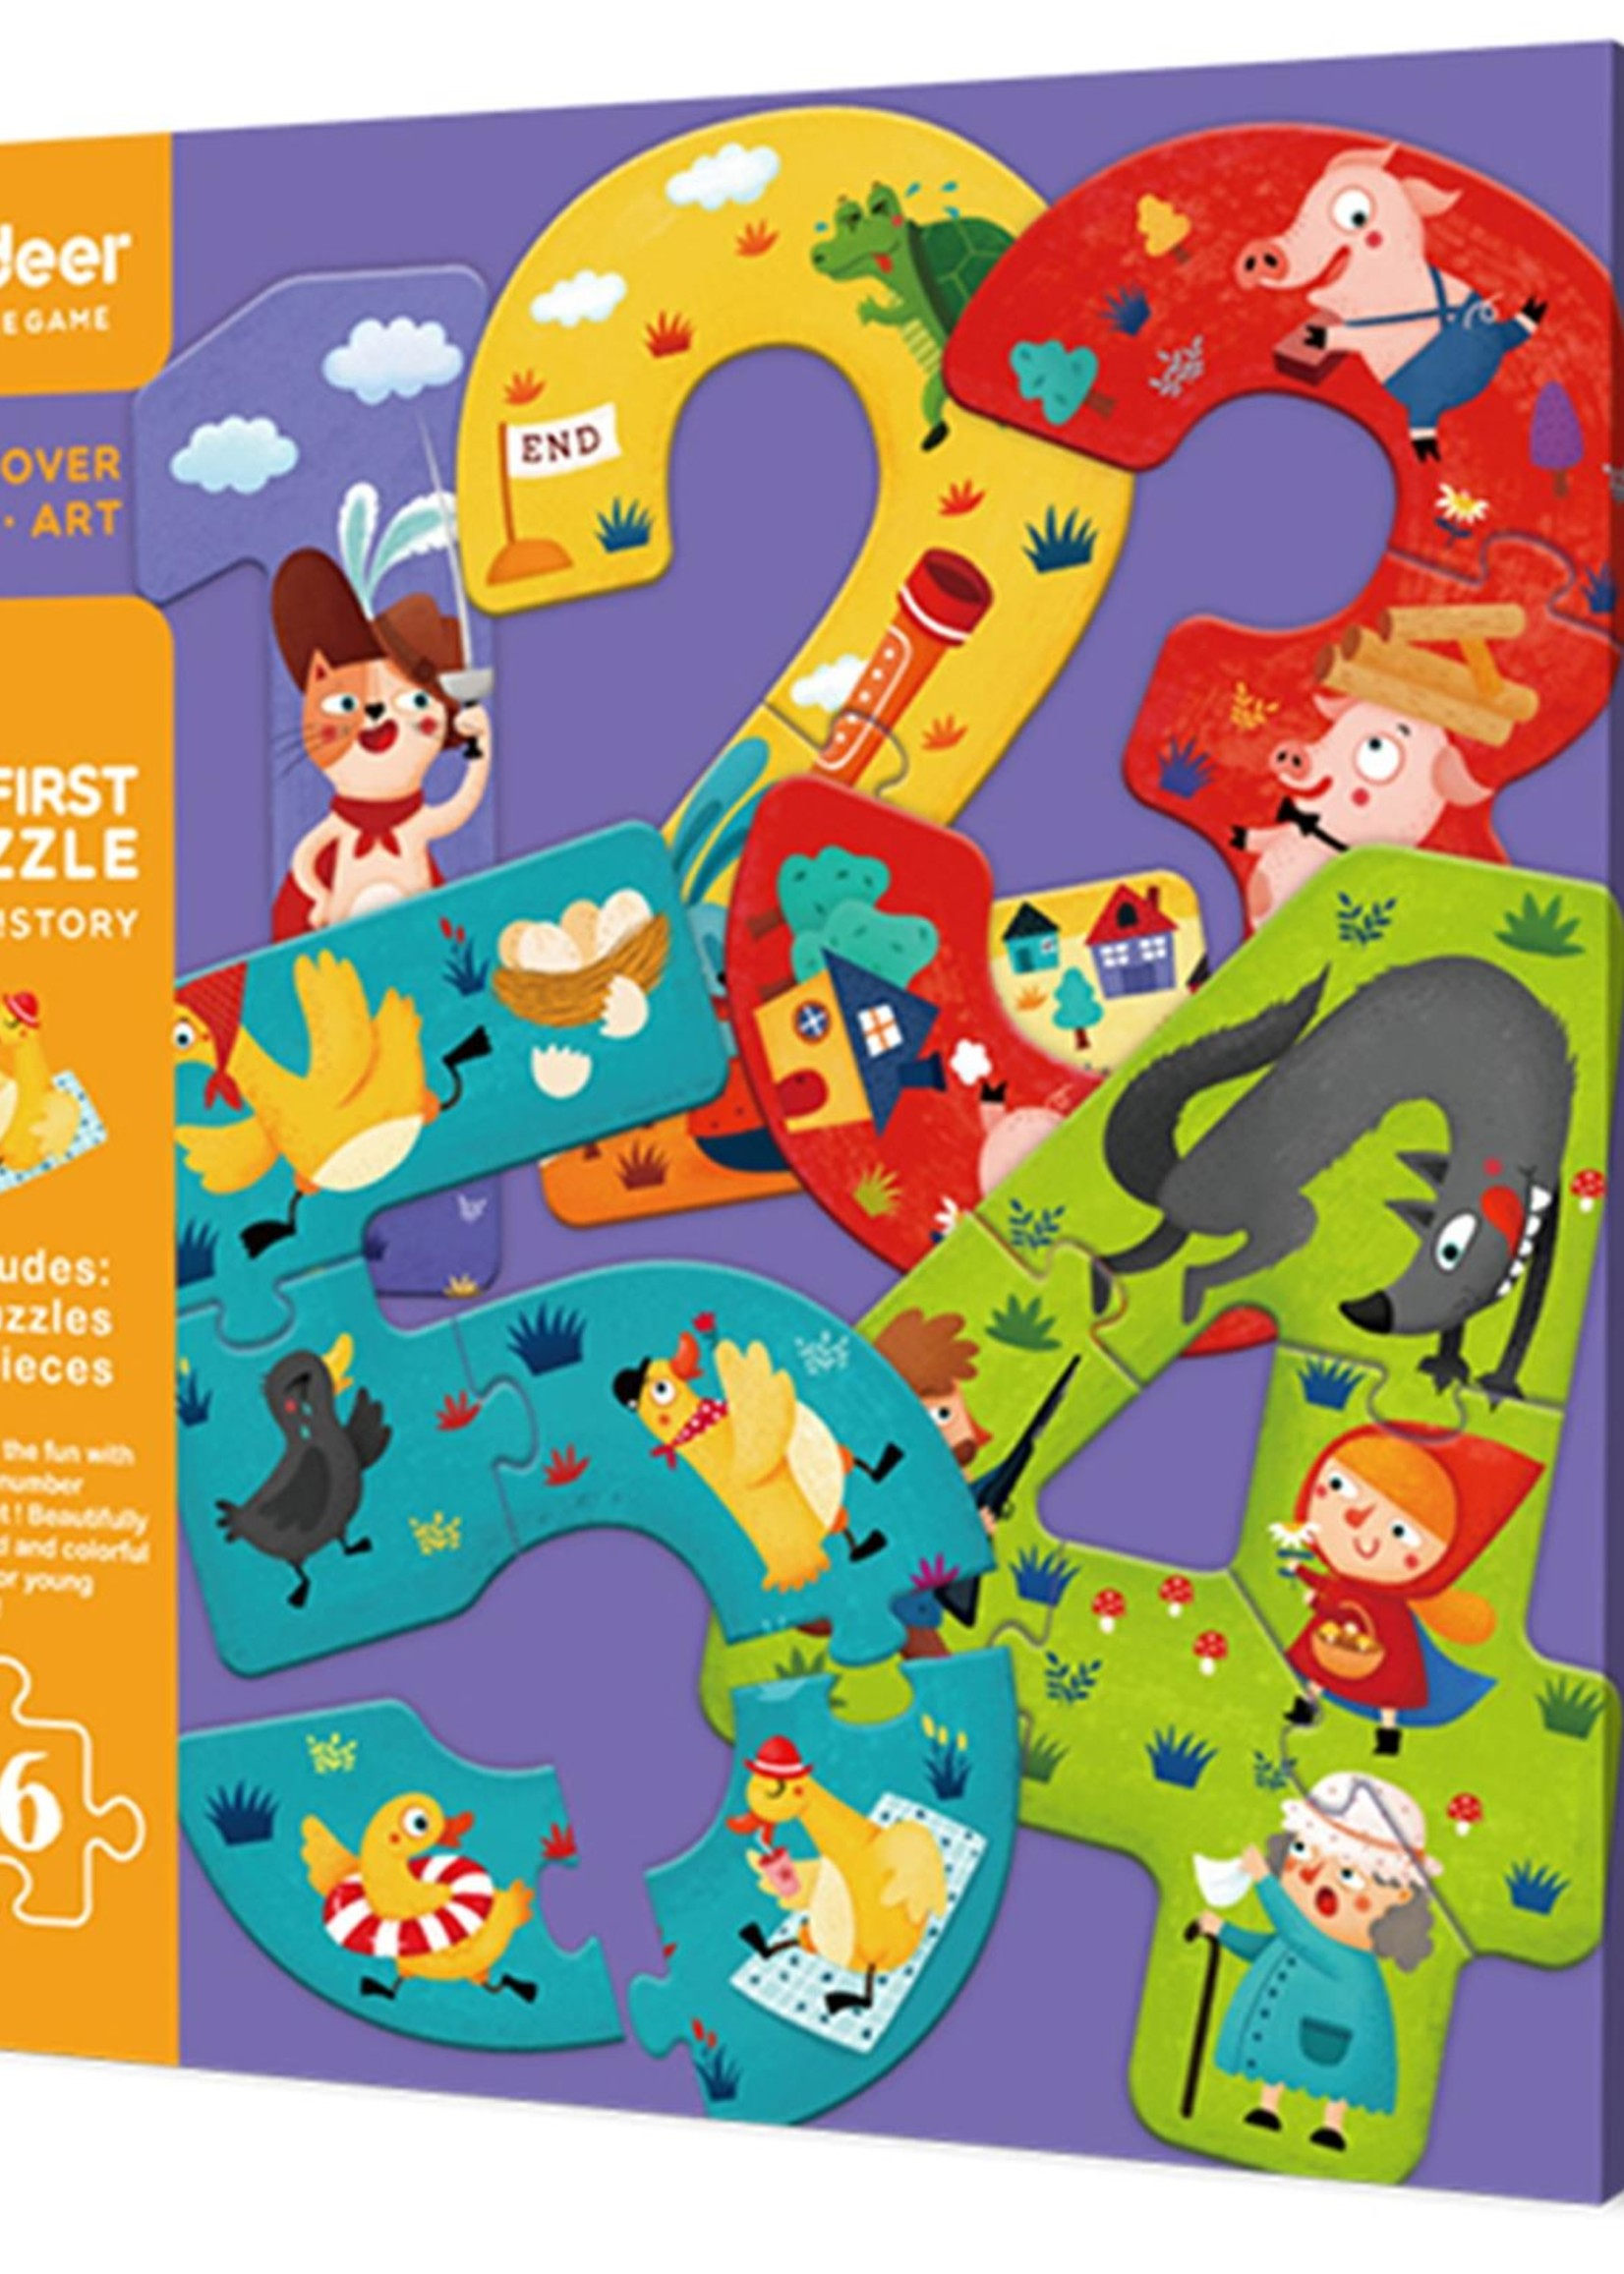 Mideer Mideer-AW20 MD3030 My First Puzzle - 12345 ! Story 16 pcs